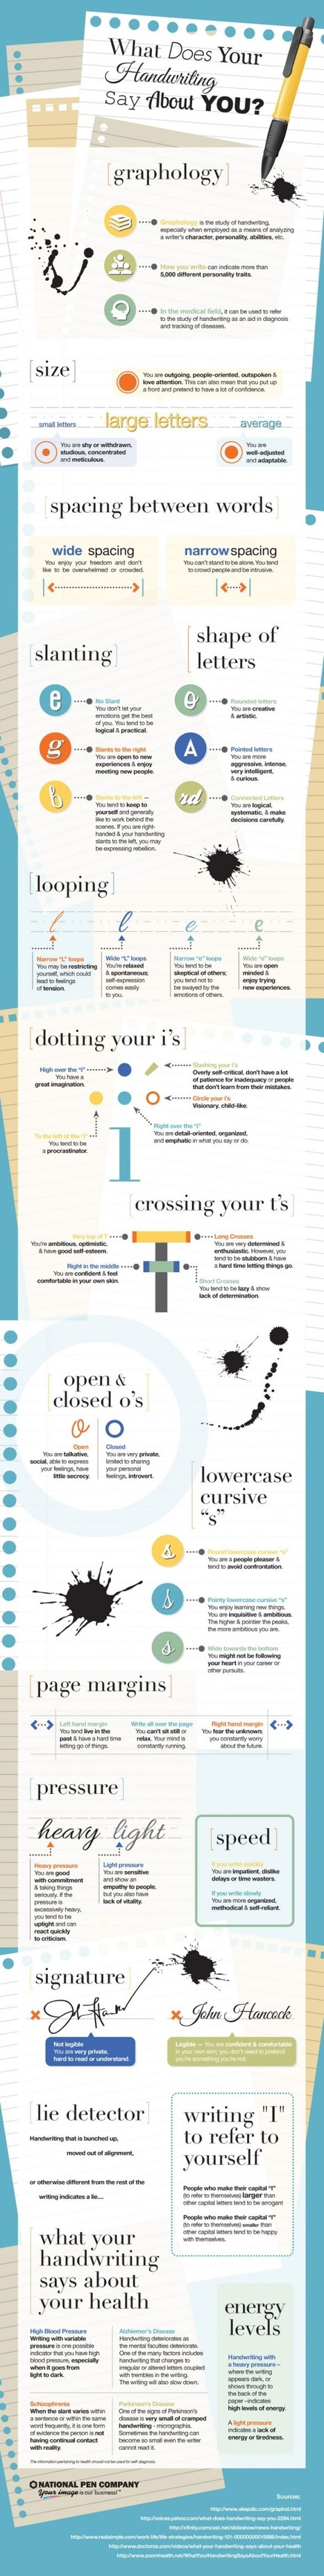 What Does Your Handwriting Say About You? [INFOGRAPHIC]   Dana Translation   Scoop.it